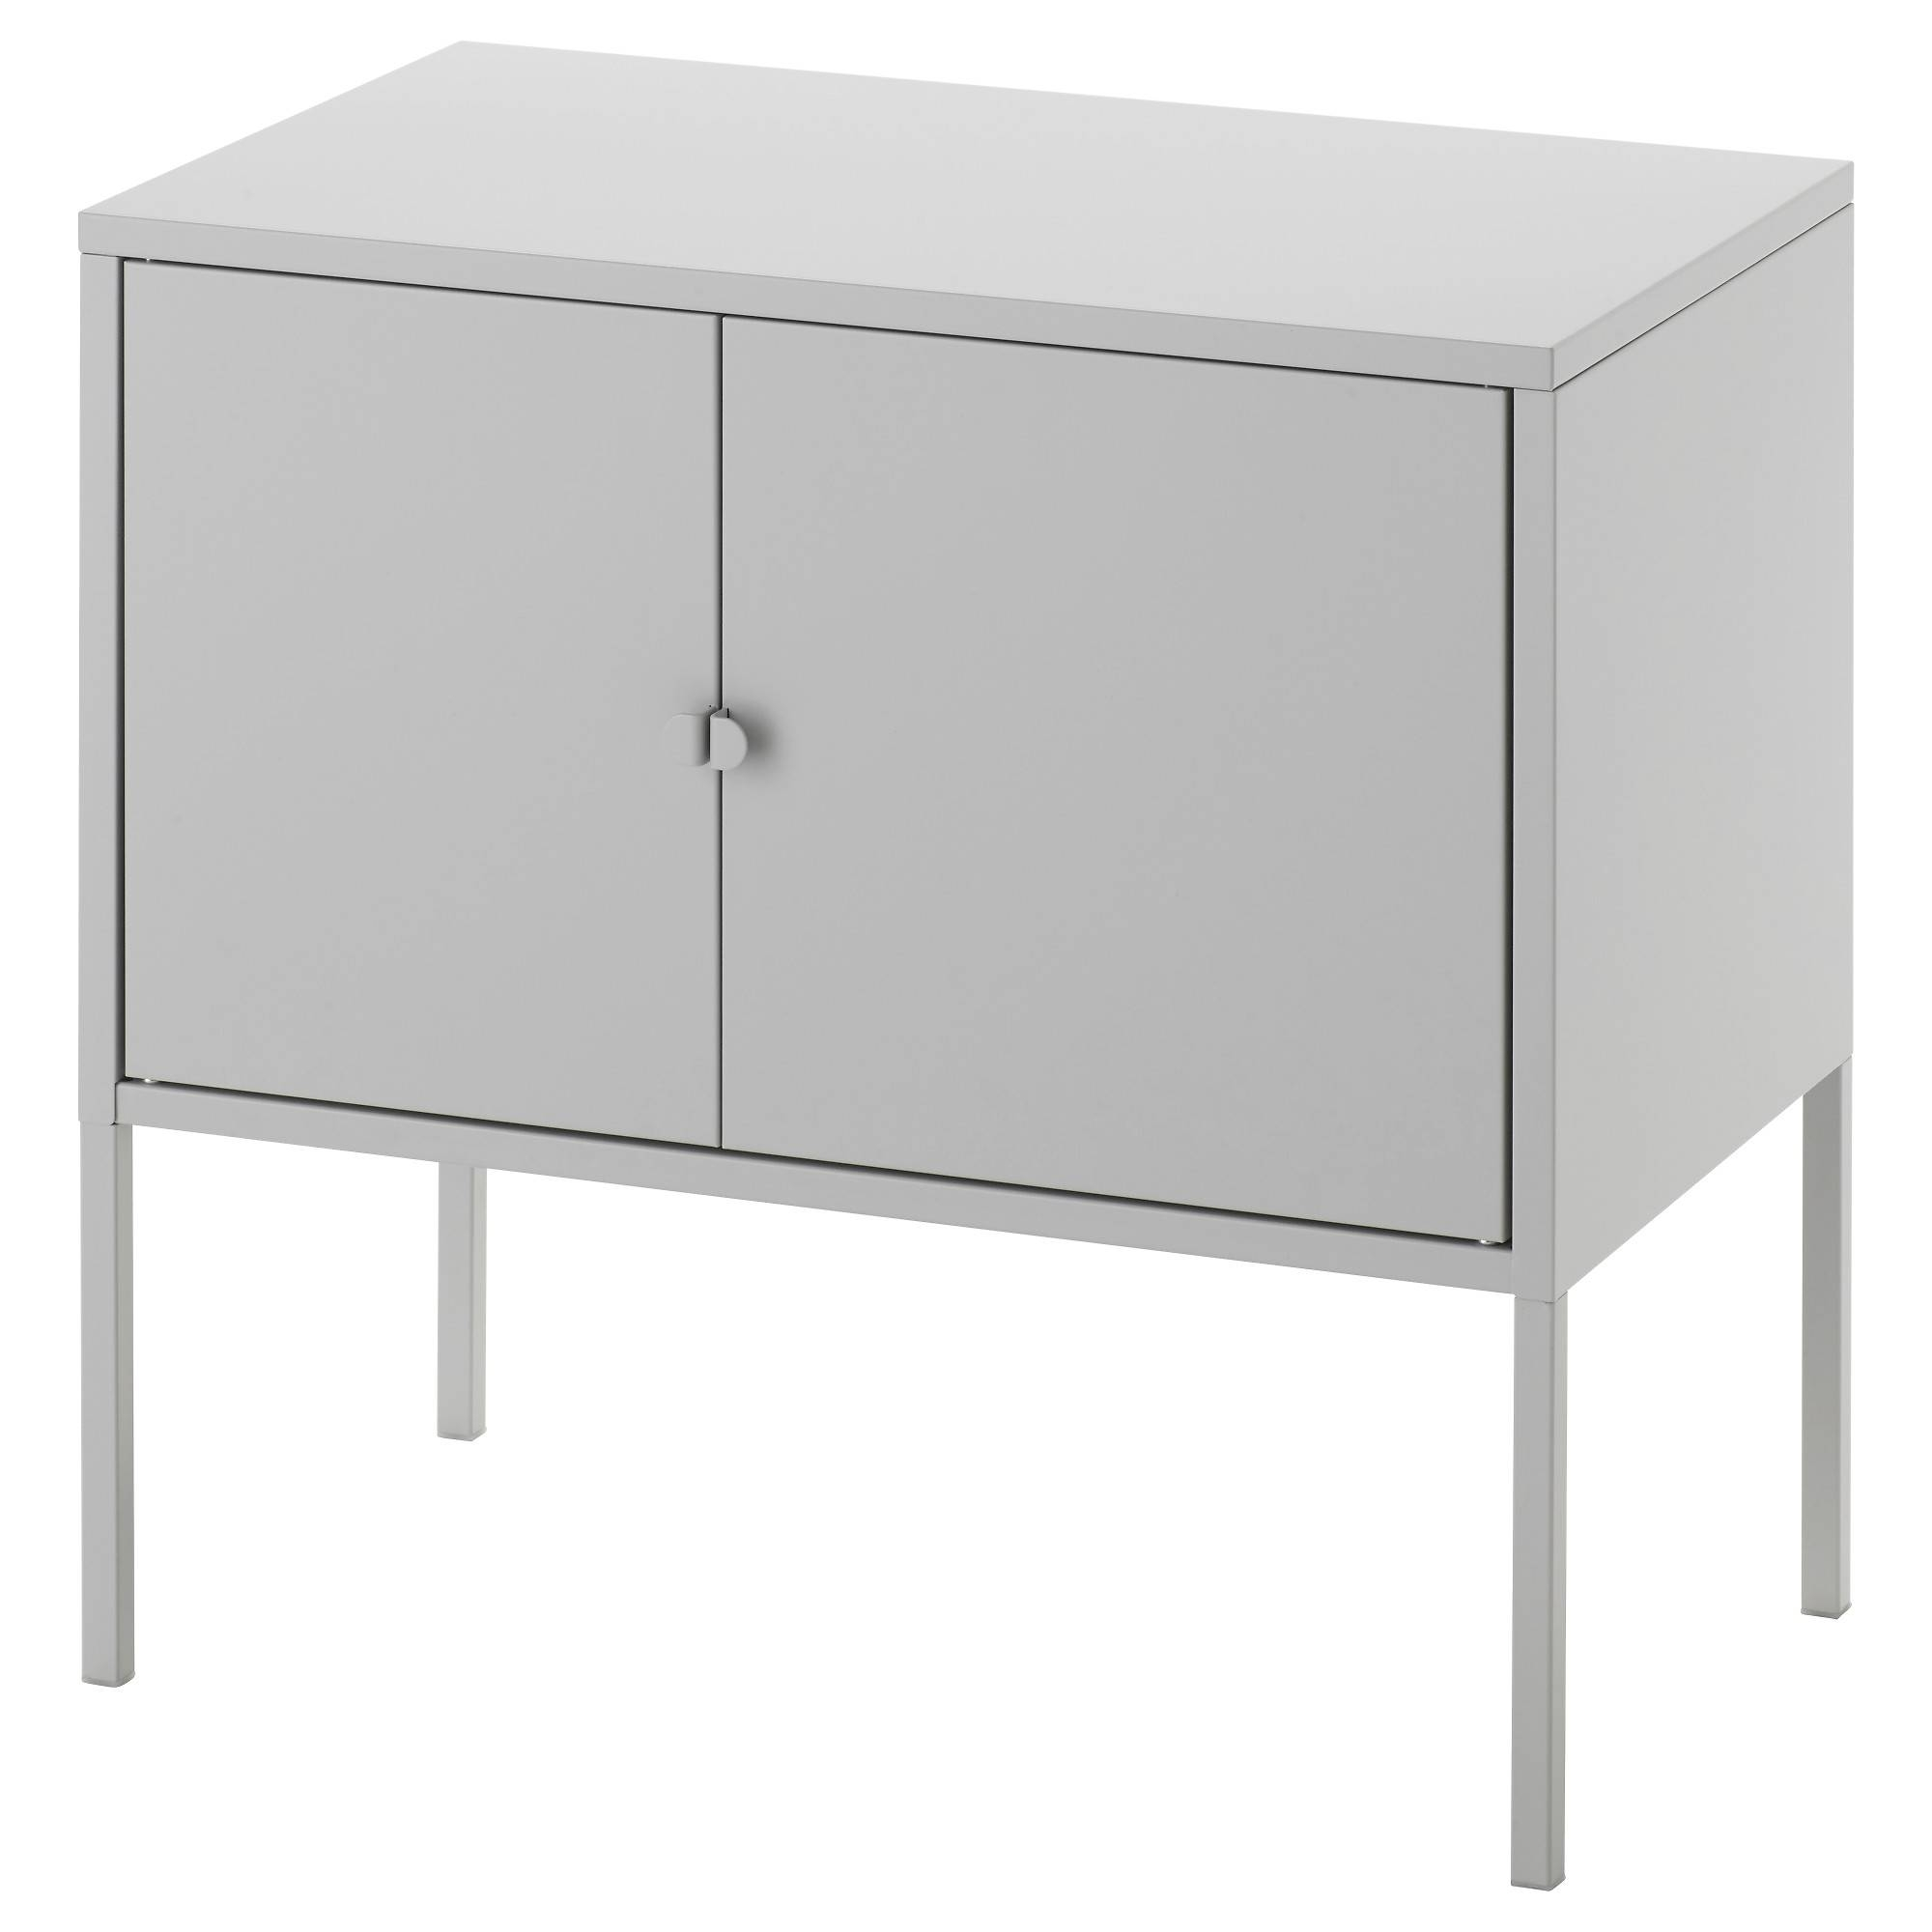 Cabinets & Sideboards - Ikea for 14 Inch Deep Sideboards (Image 5 of 15)